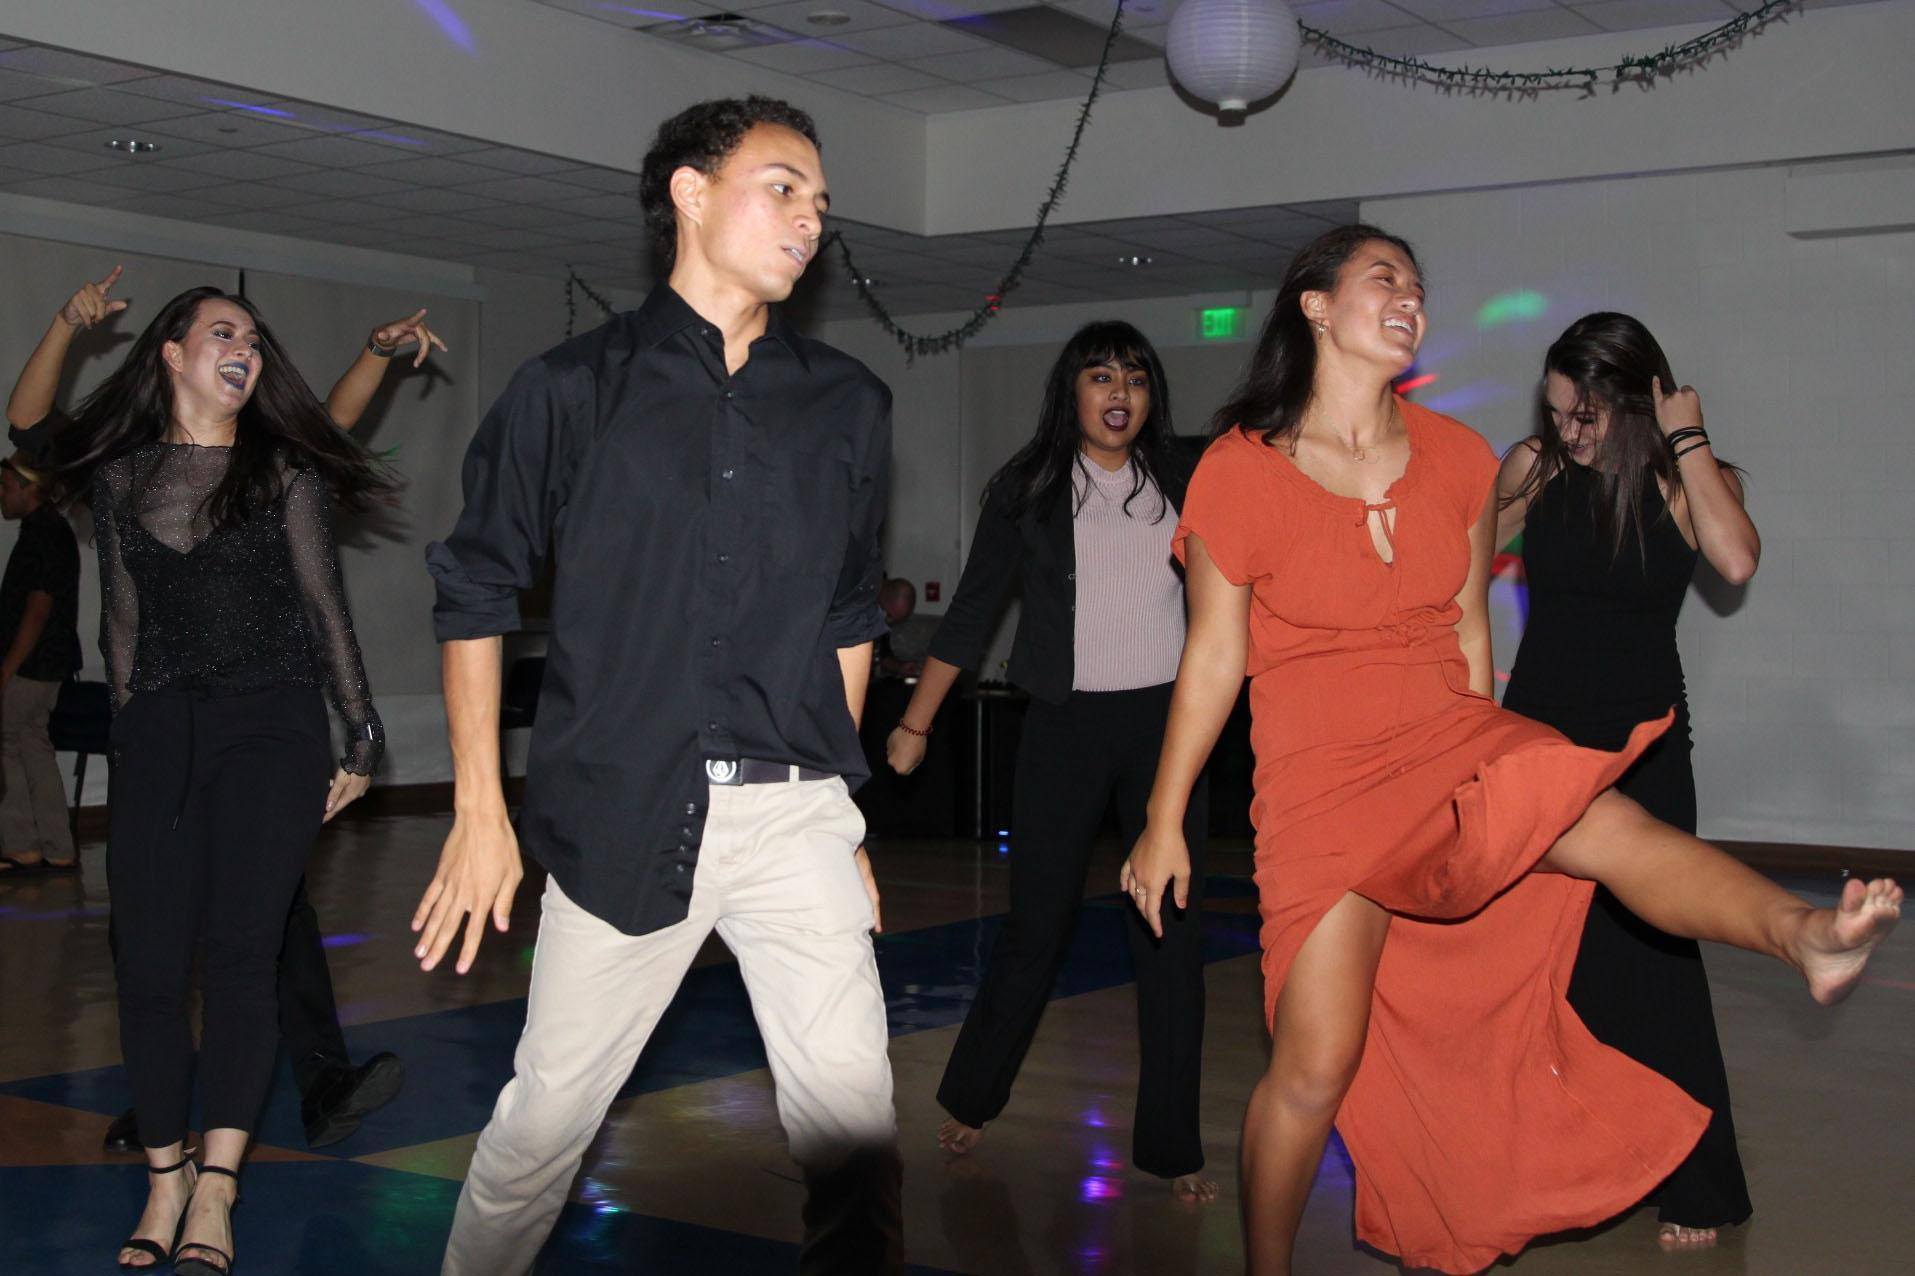 The senior class's Kamehameha's Best Dance Crew re-preform their step routine for their classmates and guests  at their last formal, the senior ball, Saturday, March 11 at Kuakini Dining Hall.